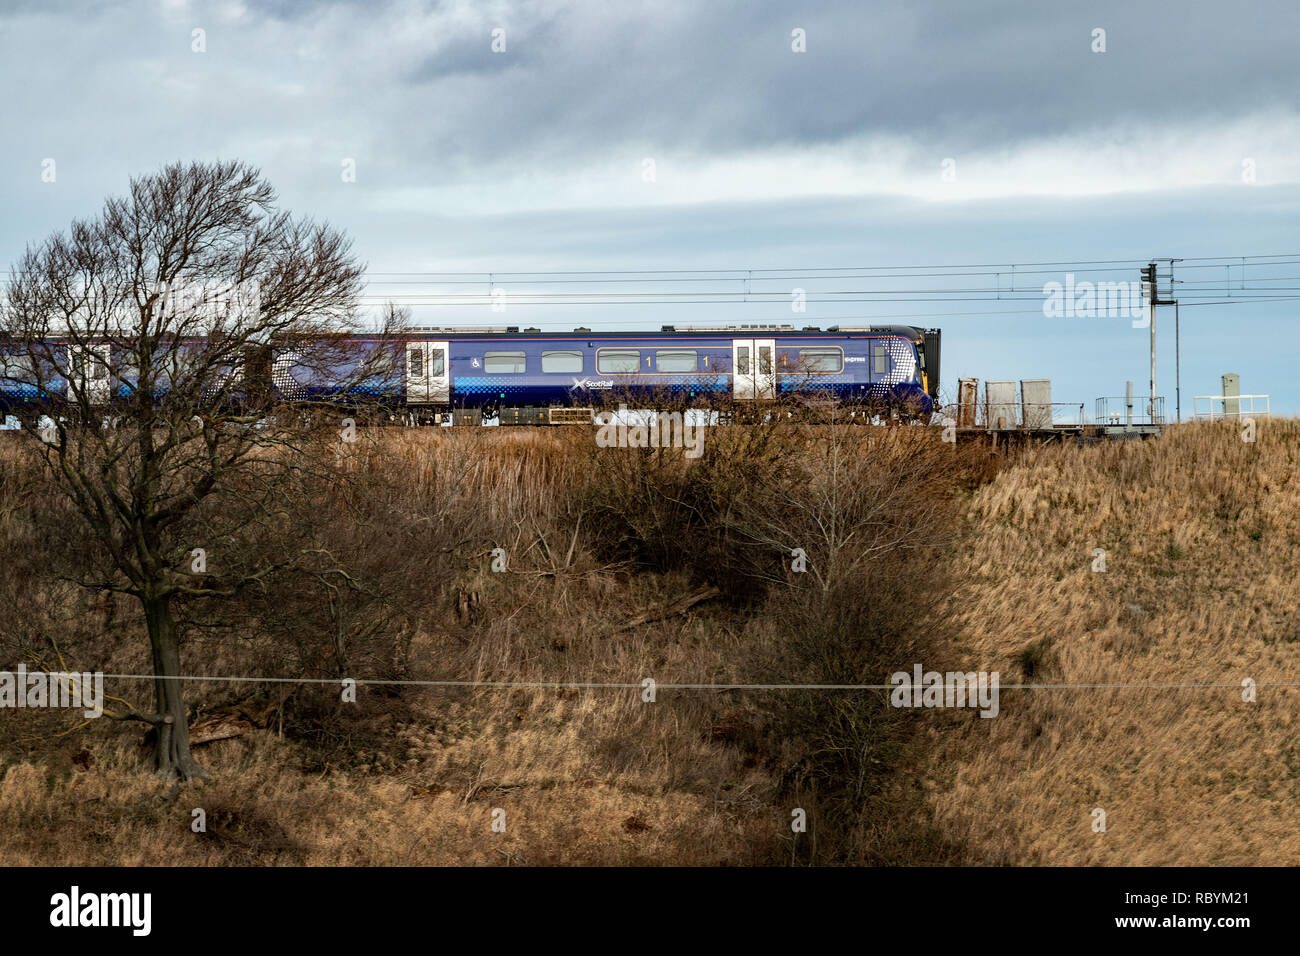 Edinburgh    January  12 2019; General view of Scotrail train.   credit steven scott taylor / alamy live news - Stock Image